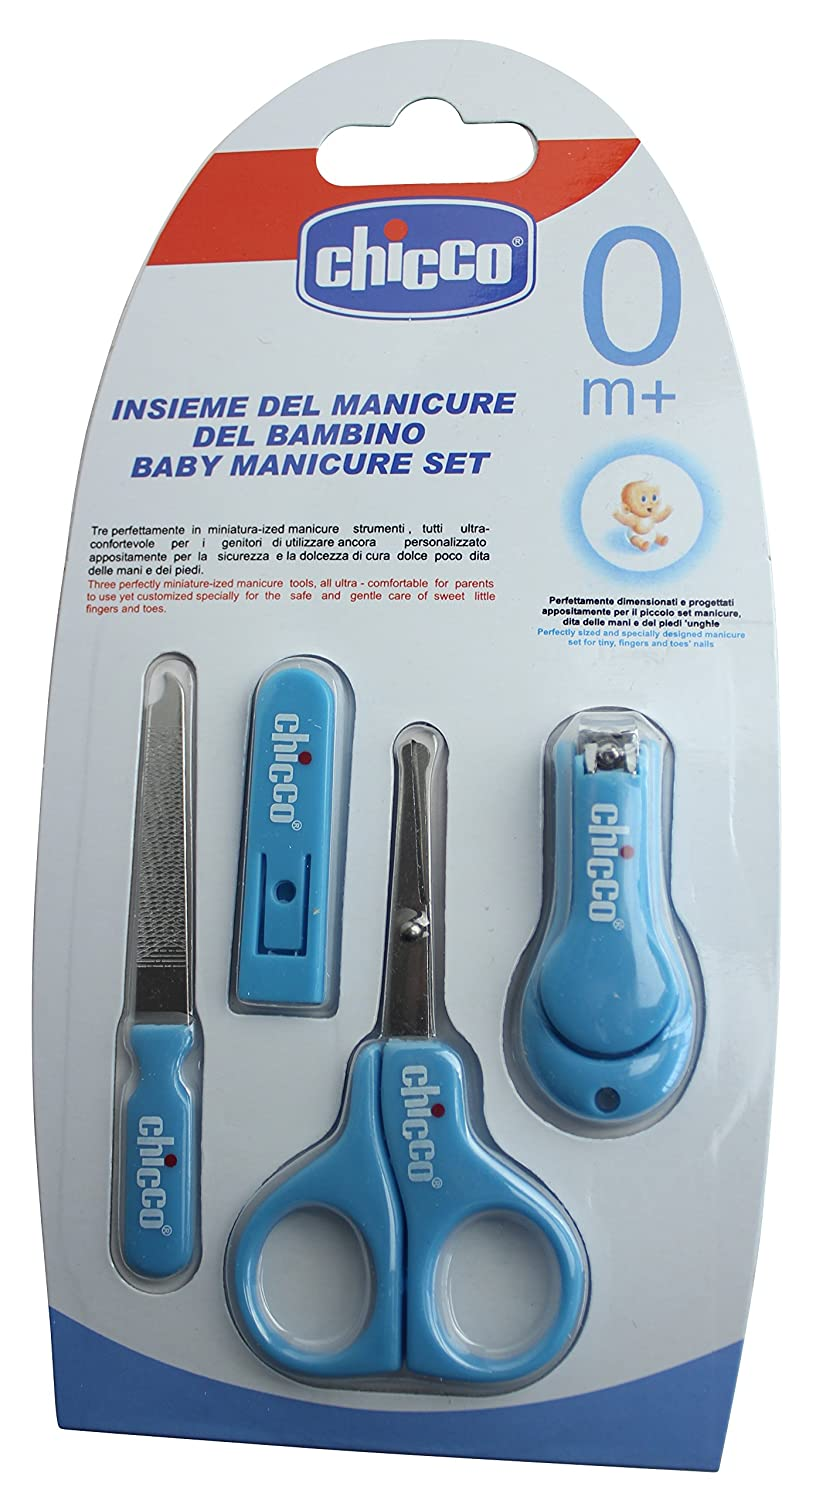 Original Baby Manicure Set Contains Scissors, Mini Nail Clippers and Delicate file In Blue BabyCentre